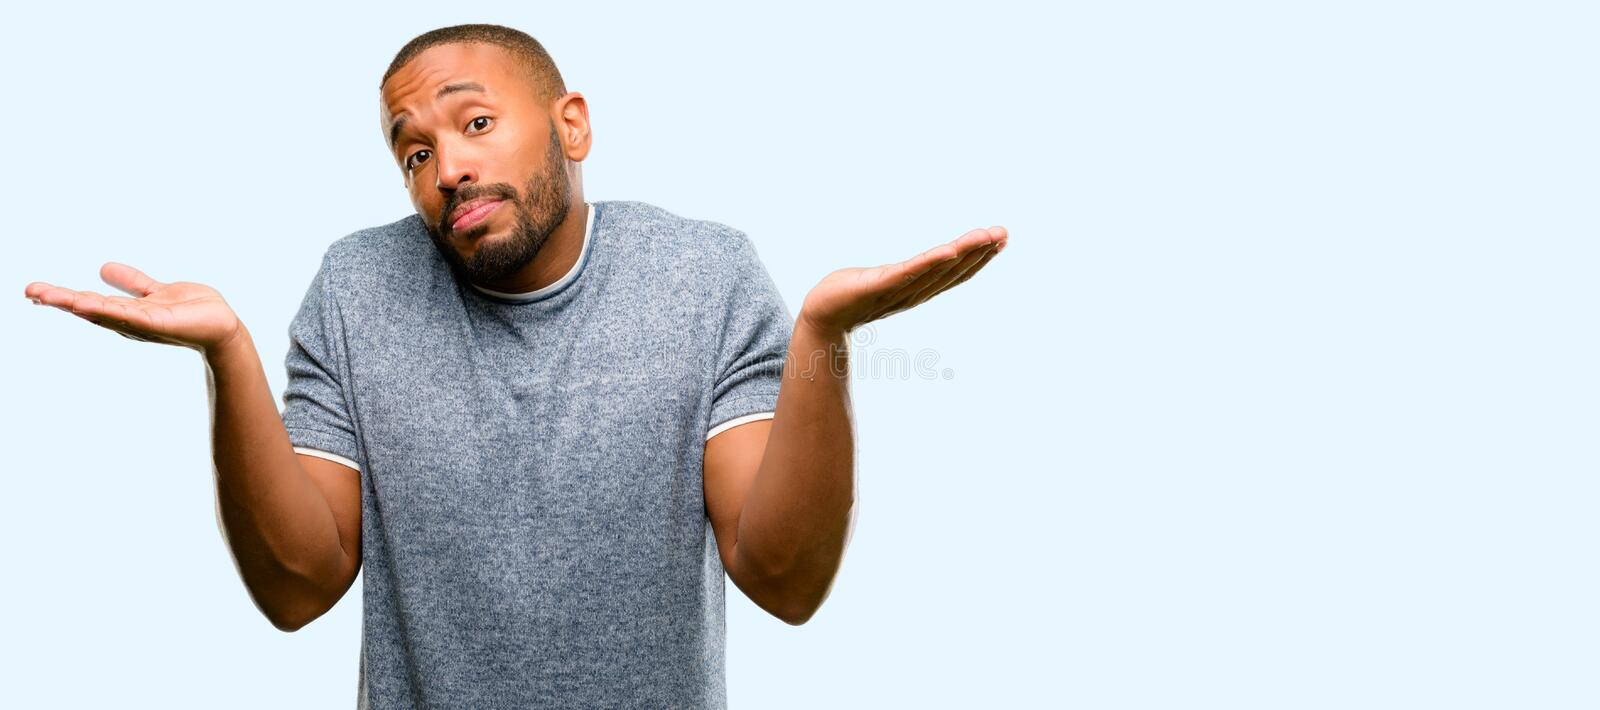 African young man over white background. African american man with beard doubt expression, confuse and wonder concept, uncertain future shrugging shoulders over royalty free stock images